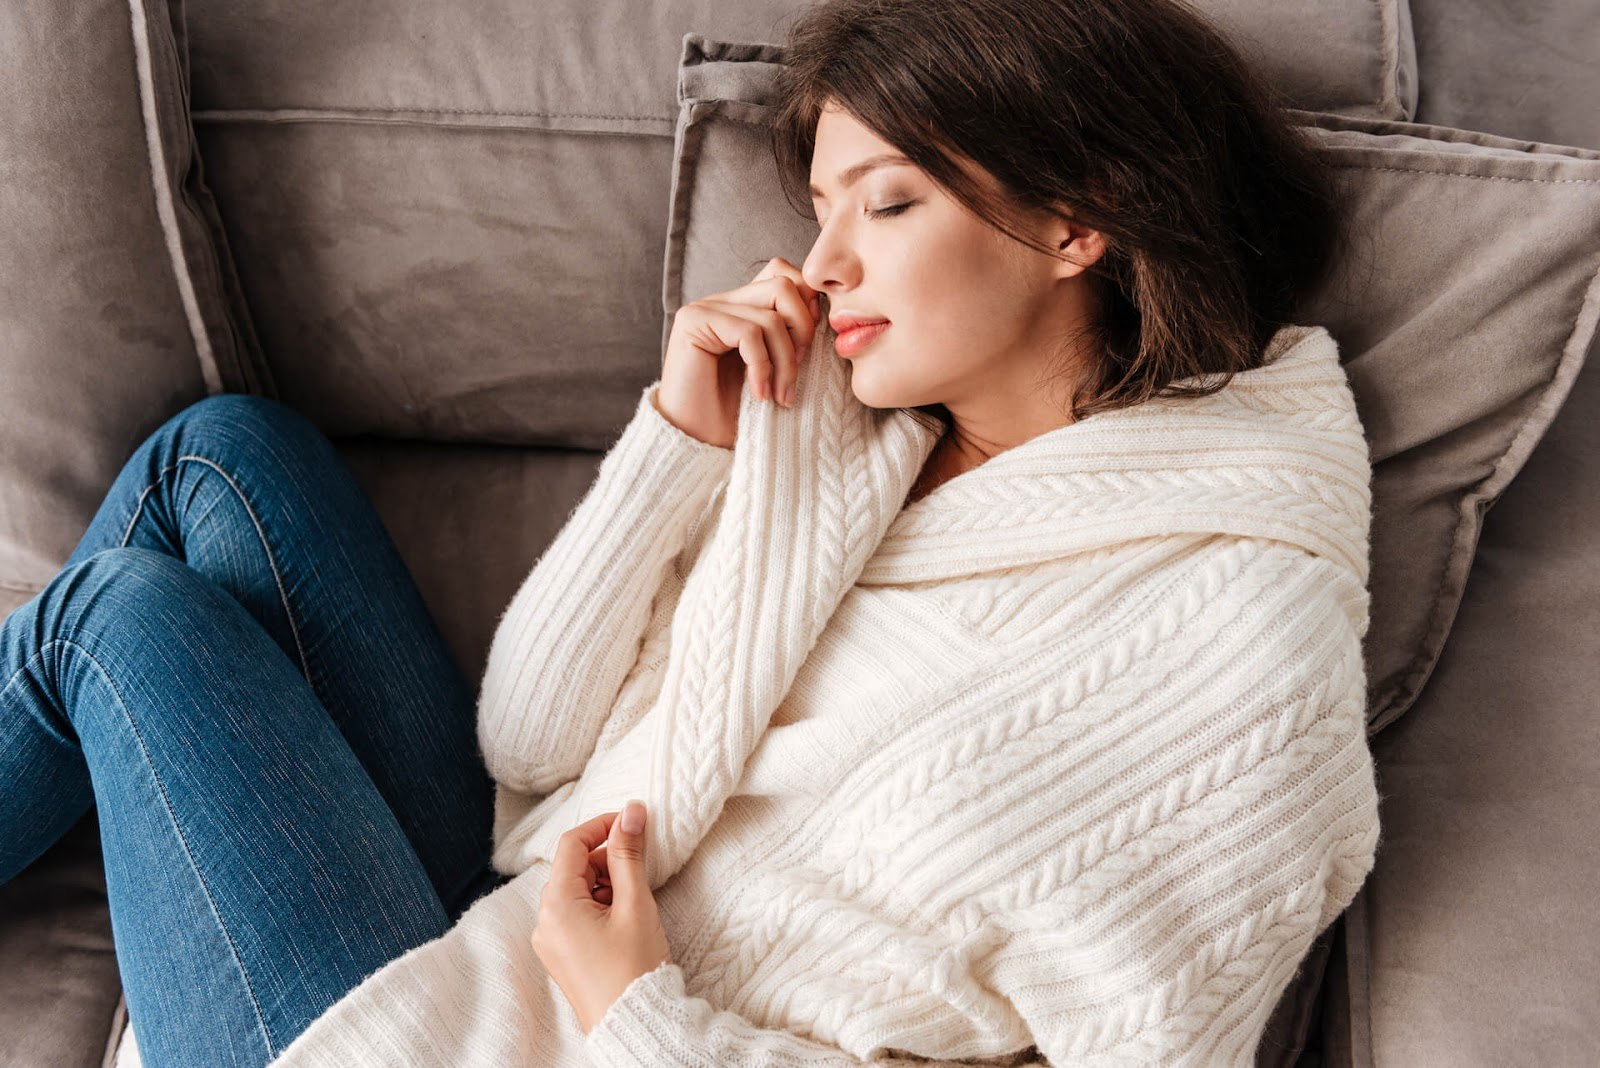 Woman cuddled up on couch